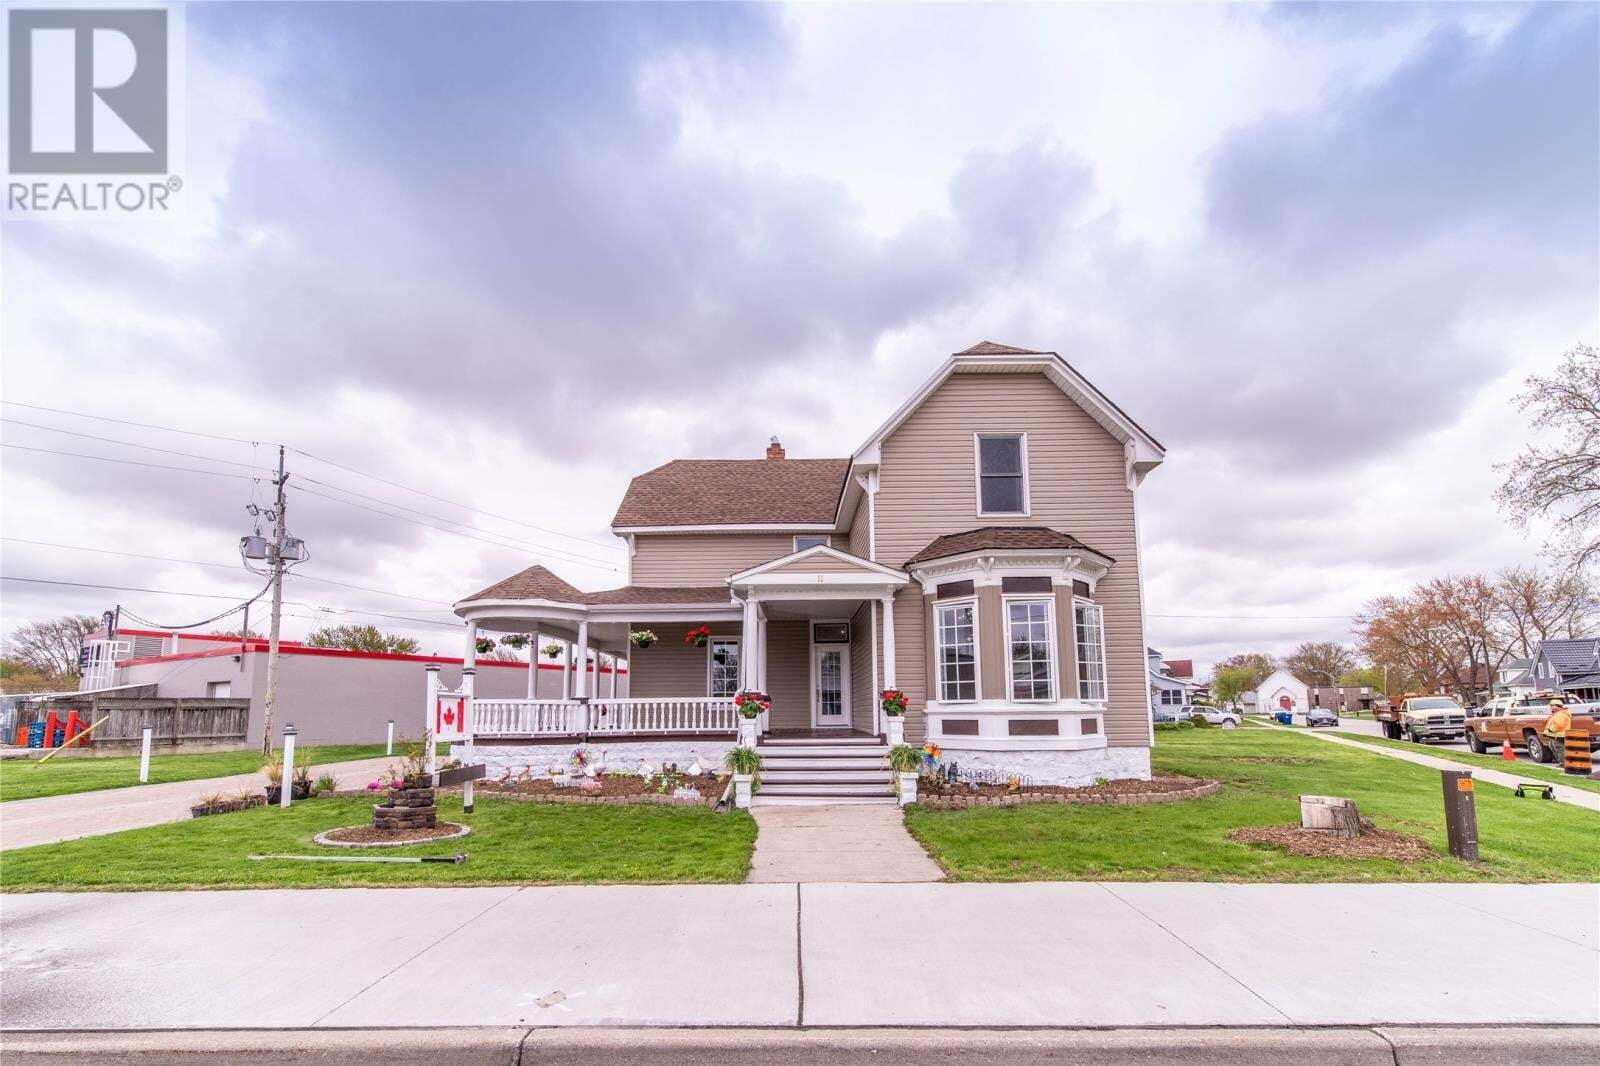 House for sale at 5 Canal St West Tilbury Ontario - MLS: 20005155